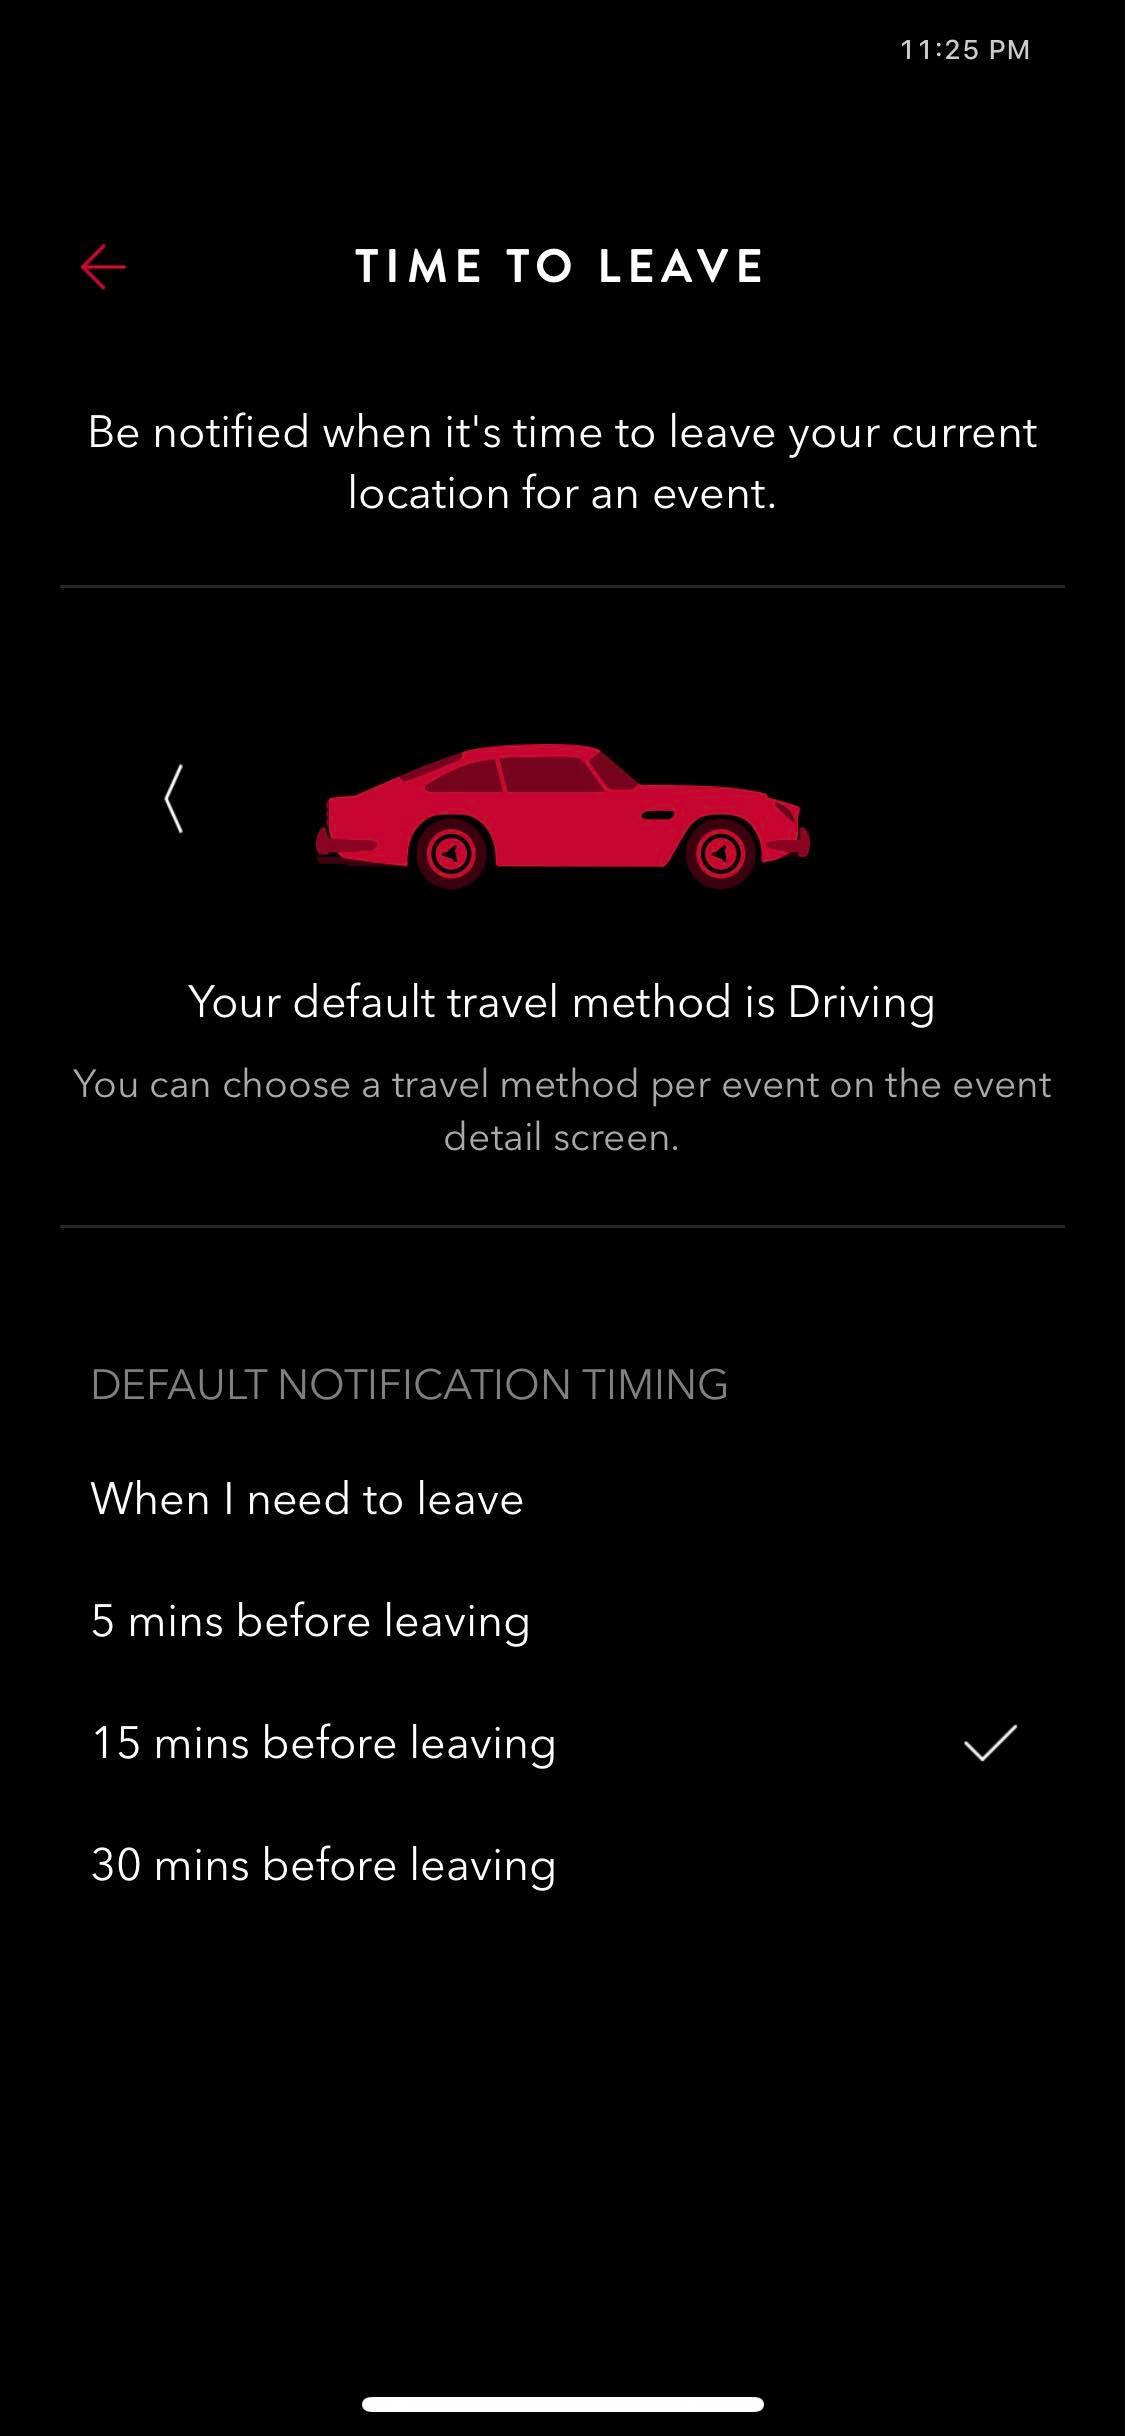 Time to Leave on iOS by Time Page from UIGarage